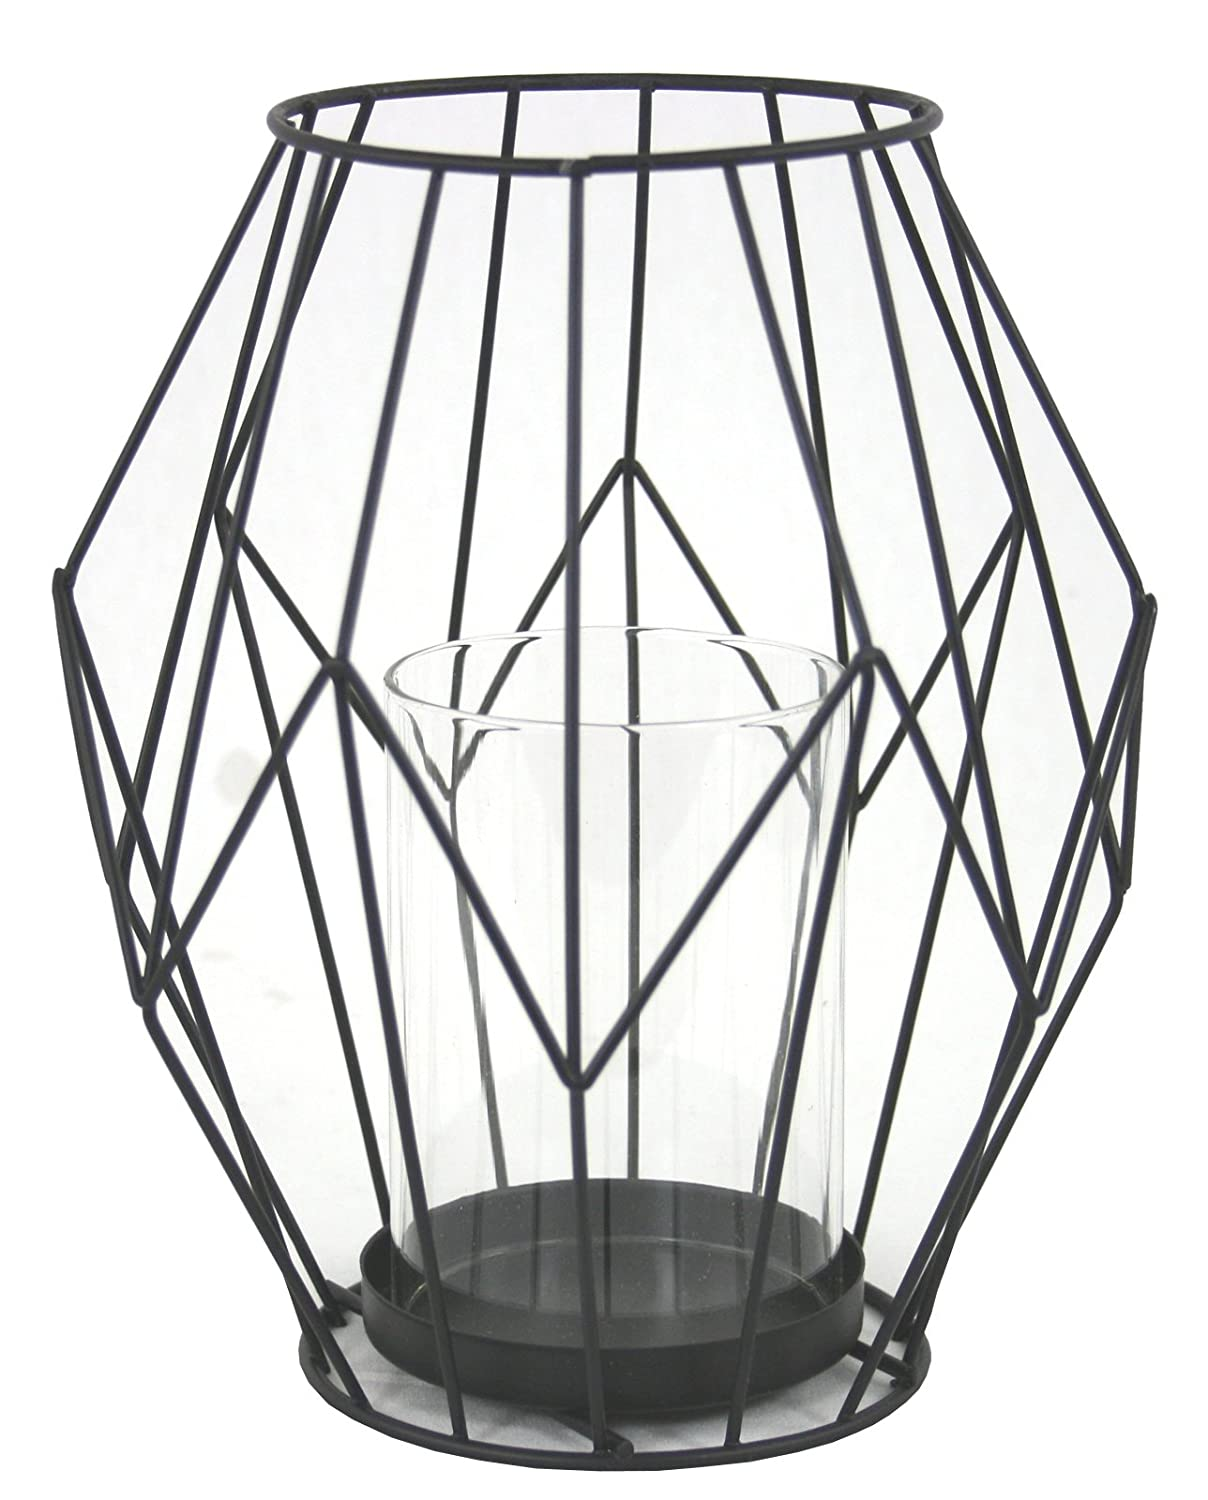 marymarygardens Black Geometric Candle Lantern